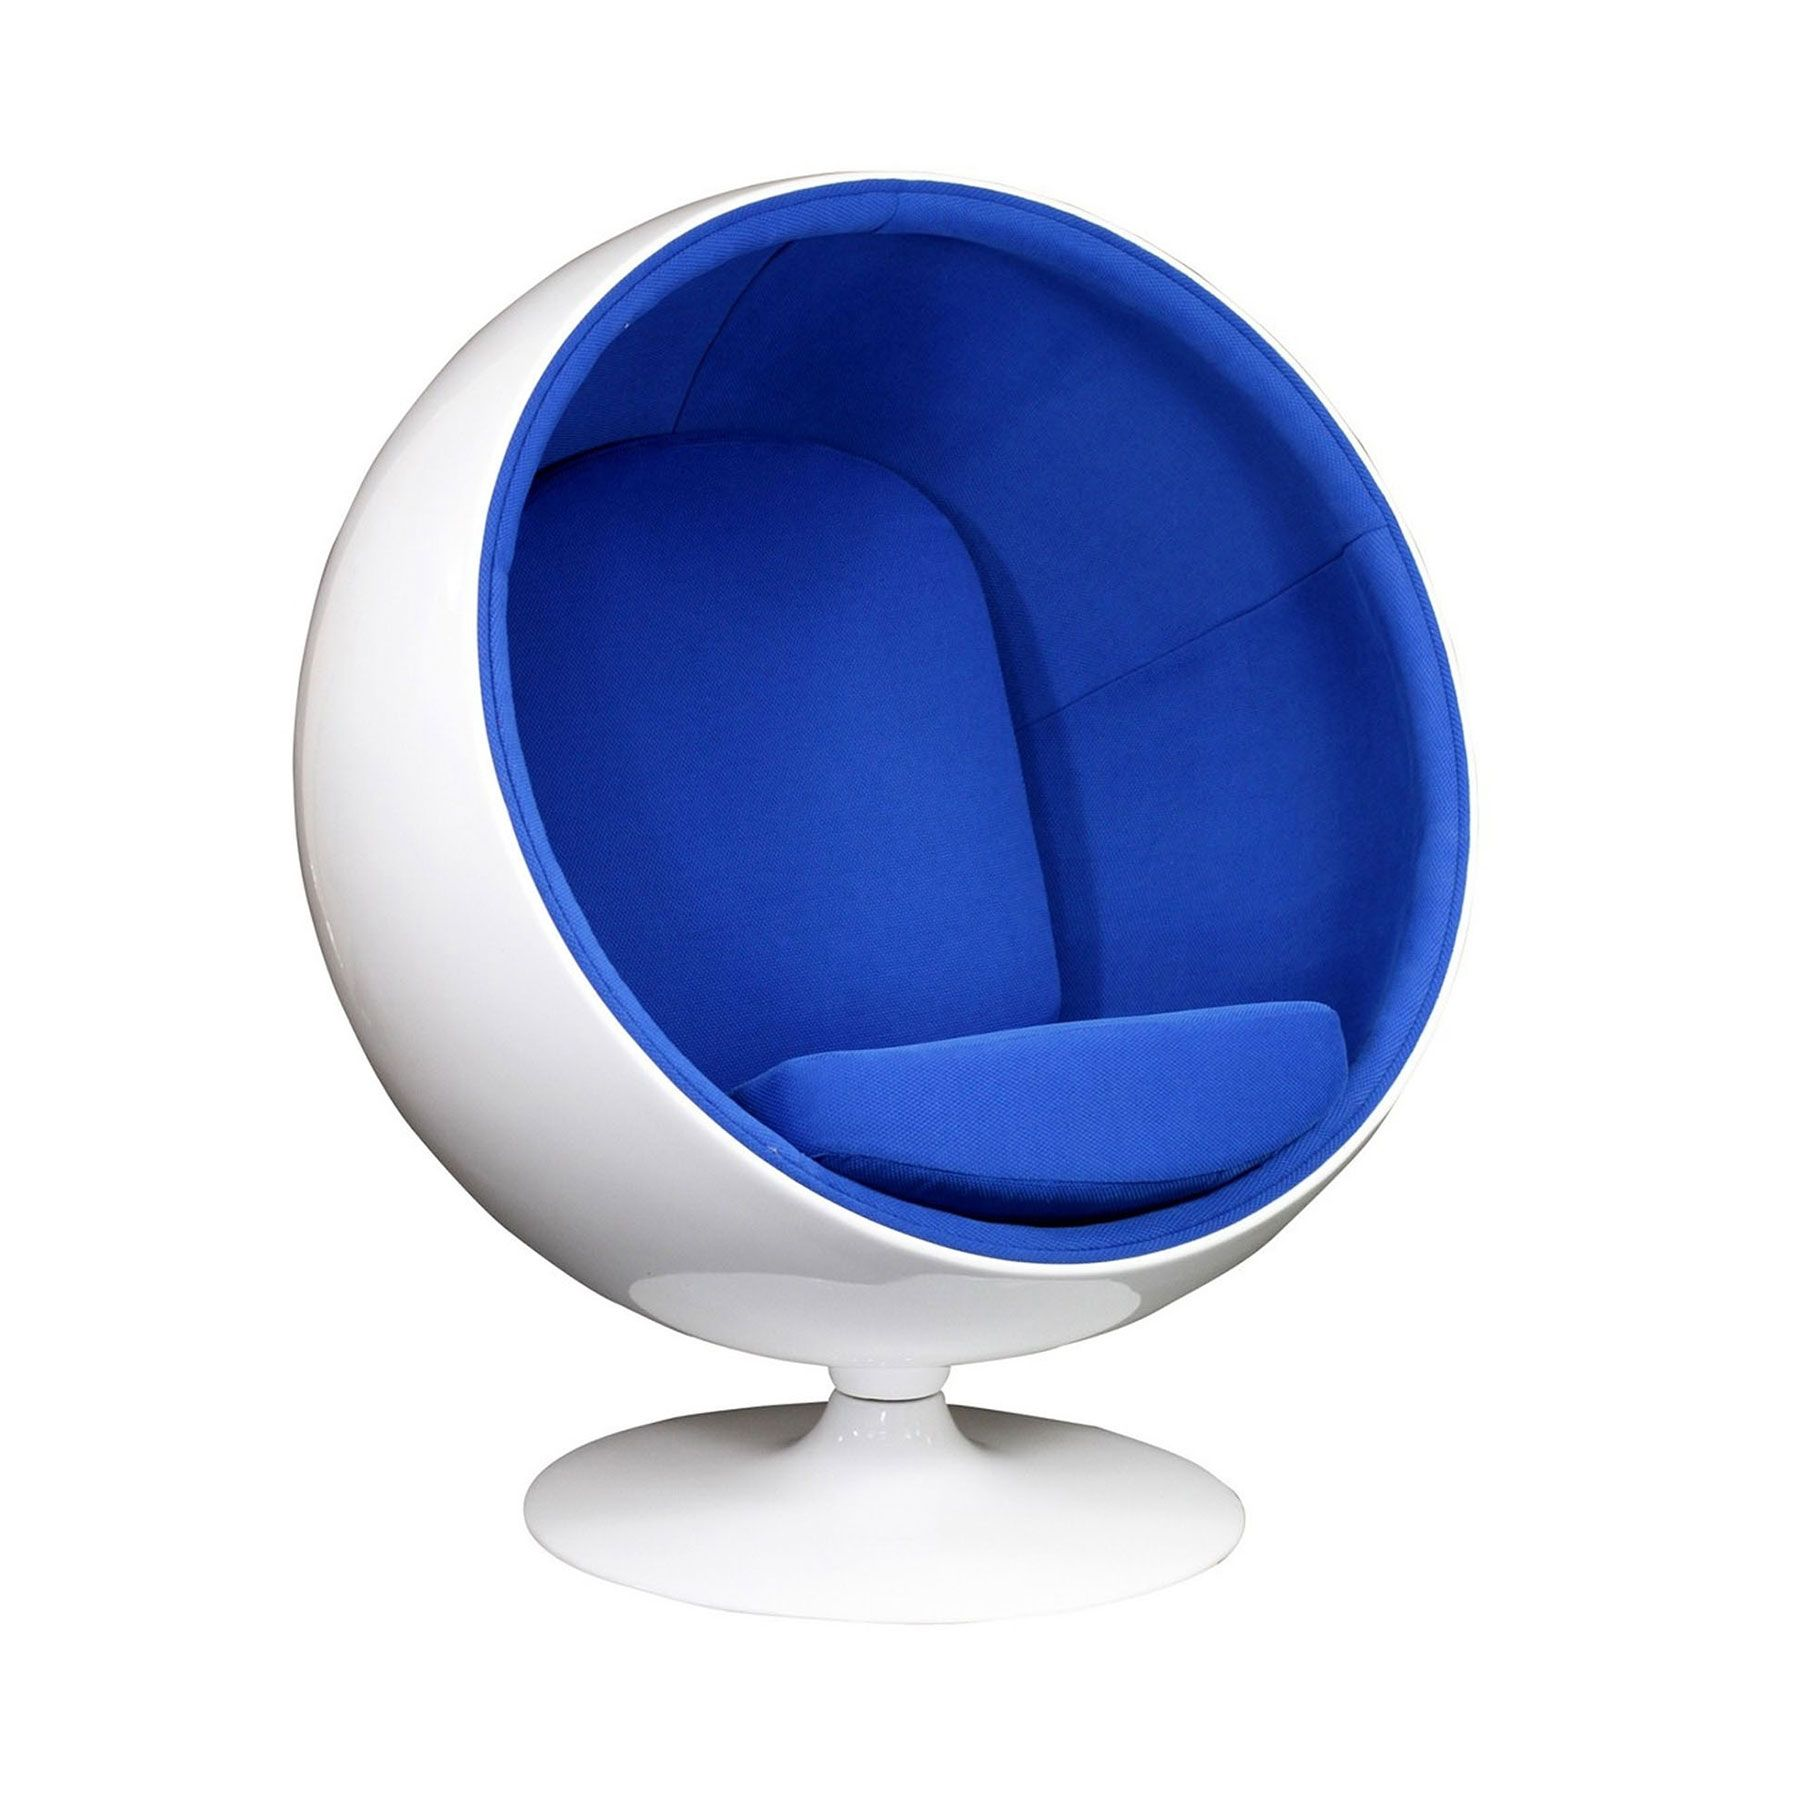 Bright Future Lounge Chair   Blue | Coccooned In This Lounge Chair, The  Future Looks